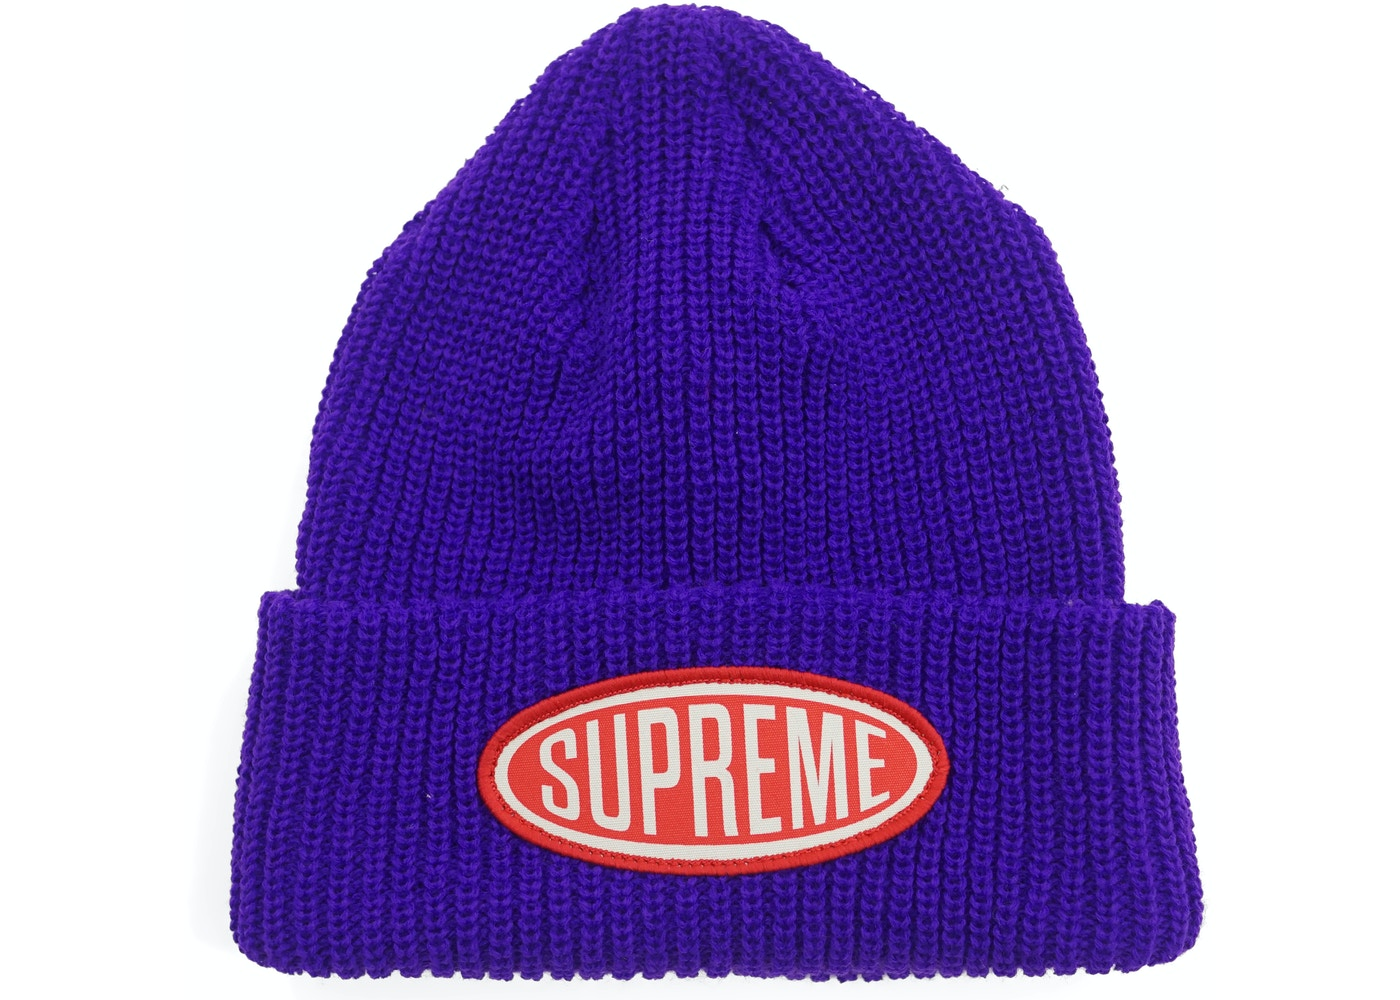 Supreme Oval Patch Beanie Purple - FW18 fd66831ea